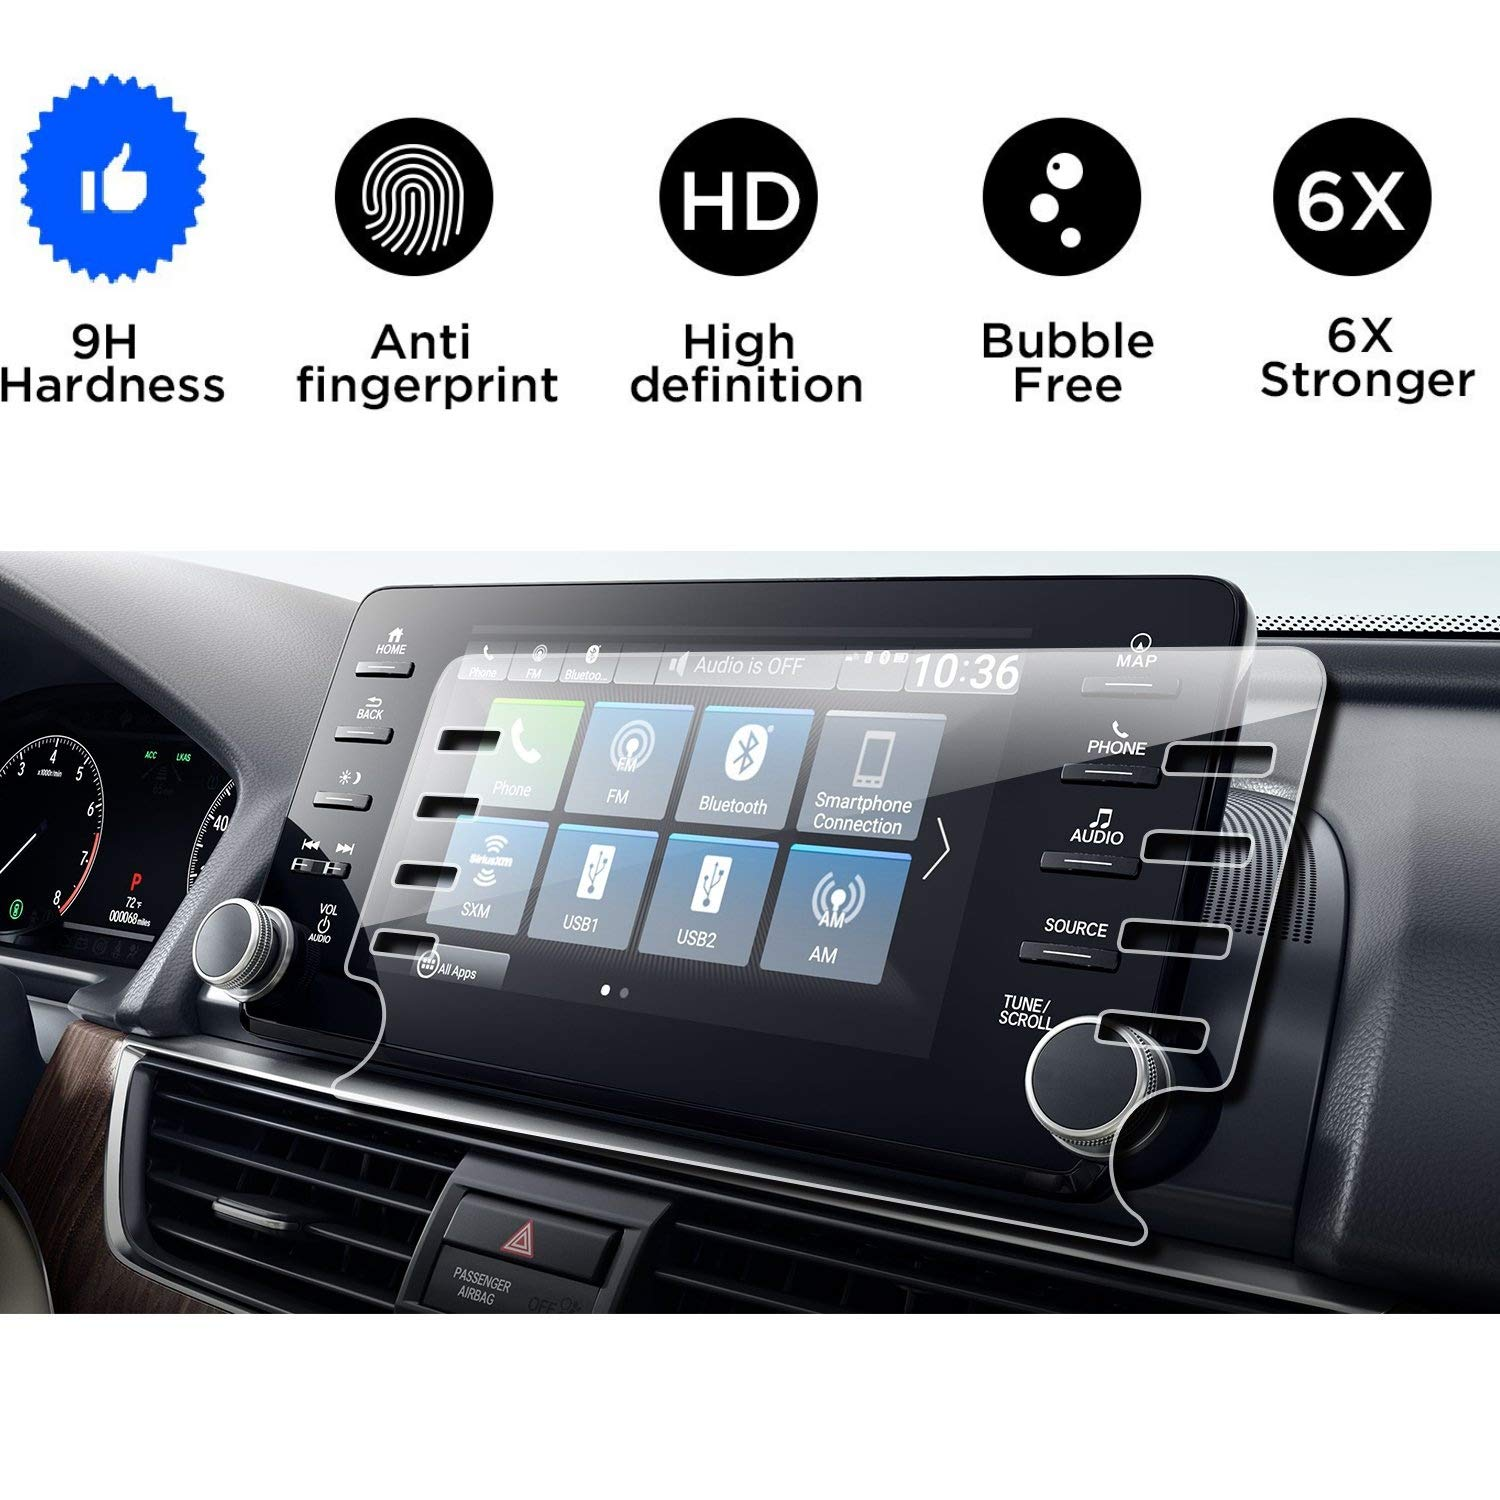 Wonderfulhz Tempered Glass Screen Protector Compatible With 2018 2019 Accord,9H Hardness,High Definition,Protecting Honda Accord 8'' Car Center Touch Screen by Wonderfulhz